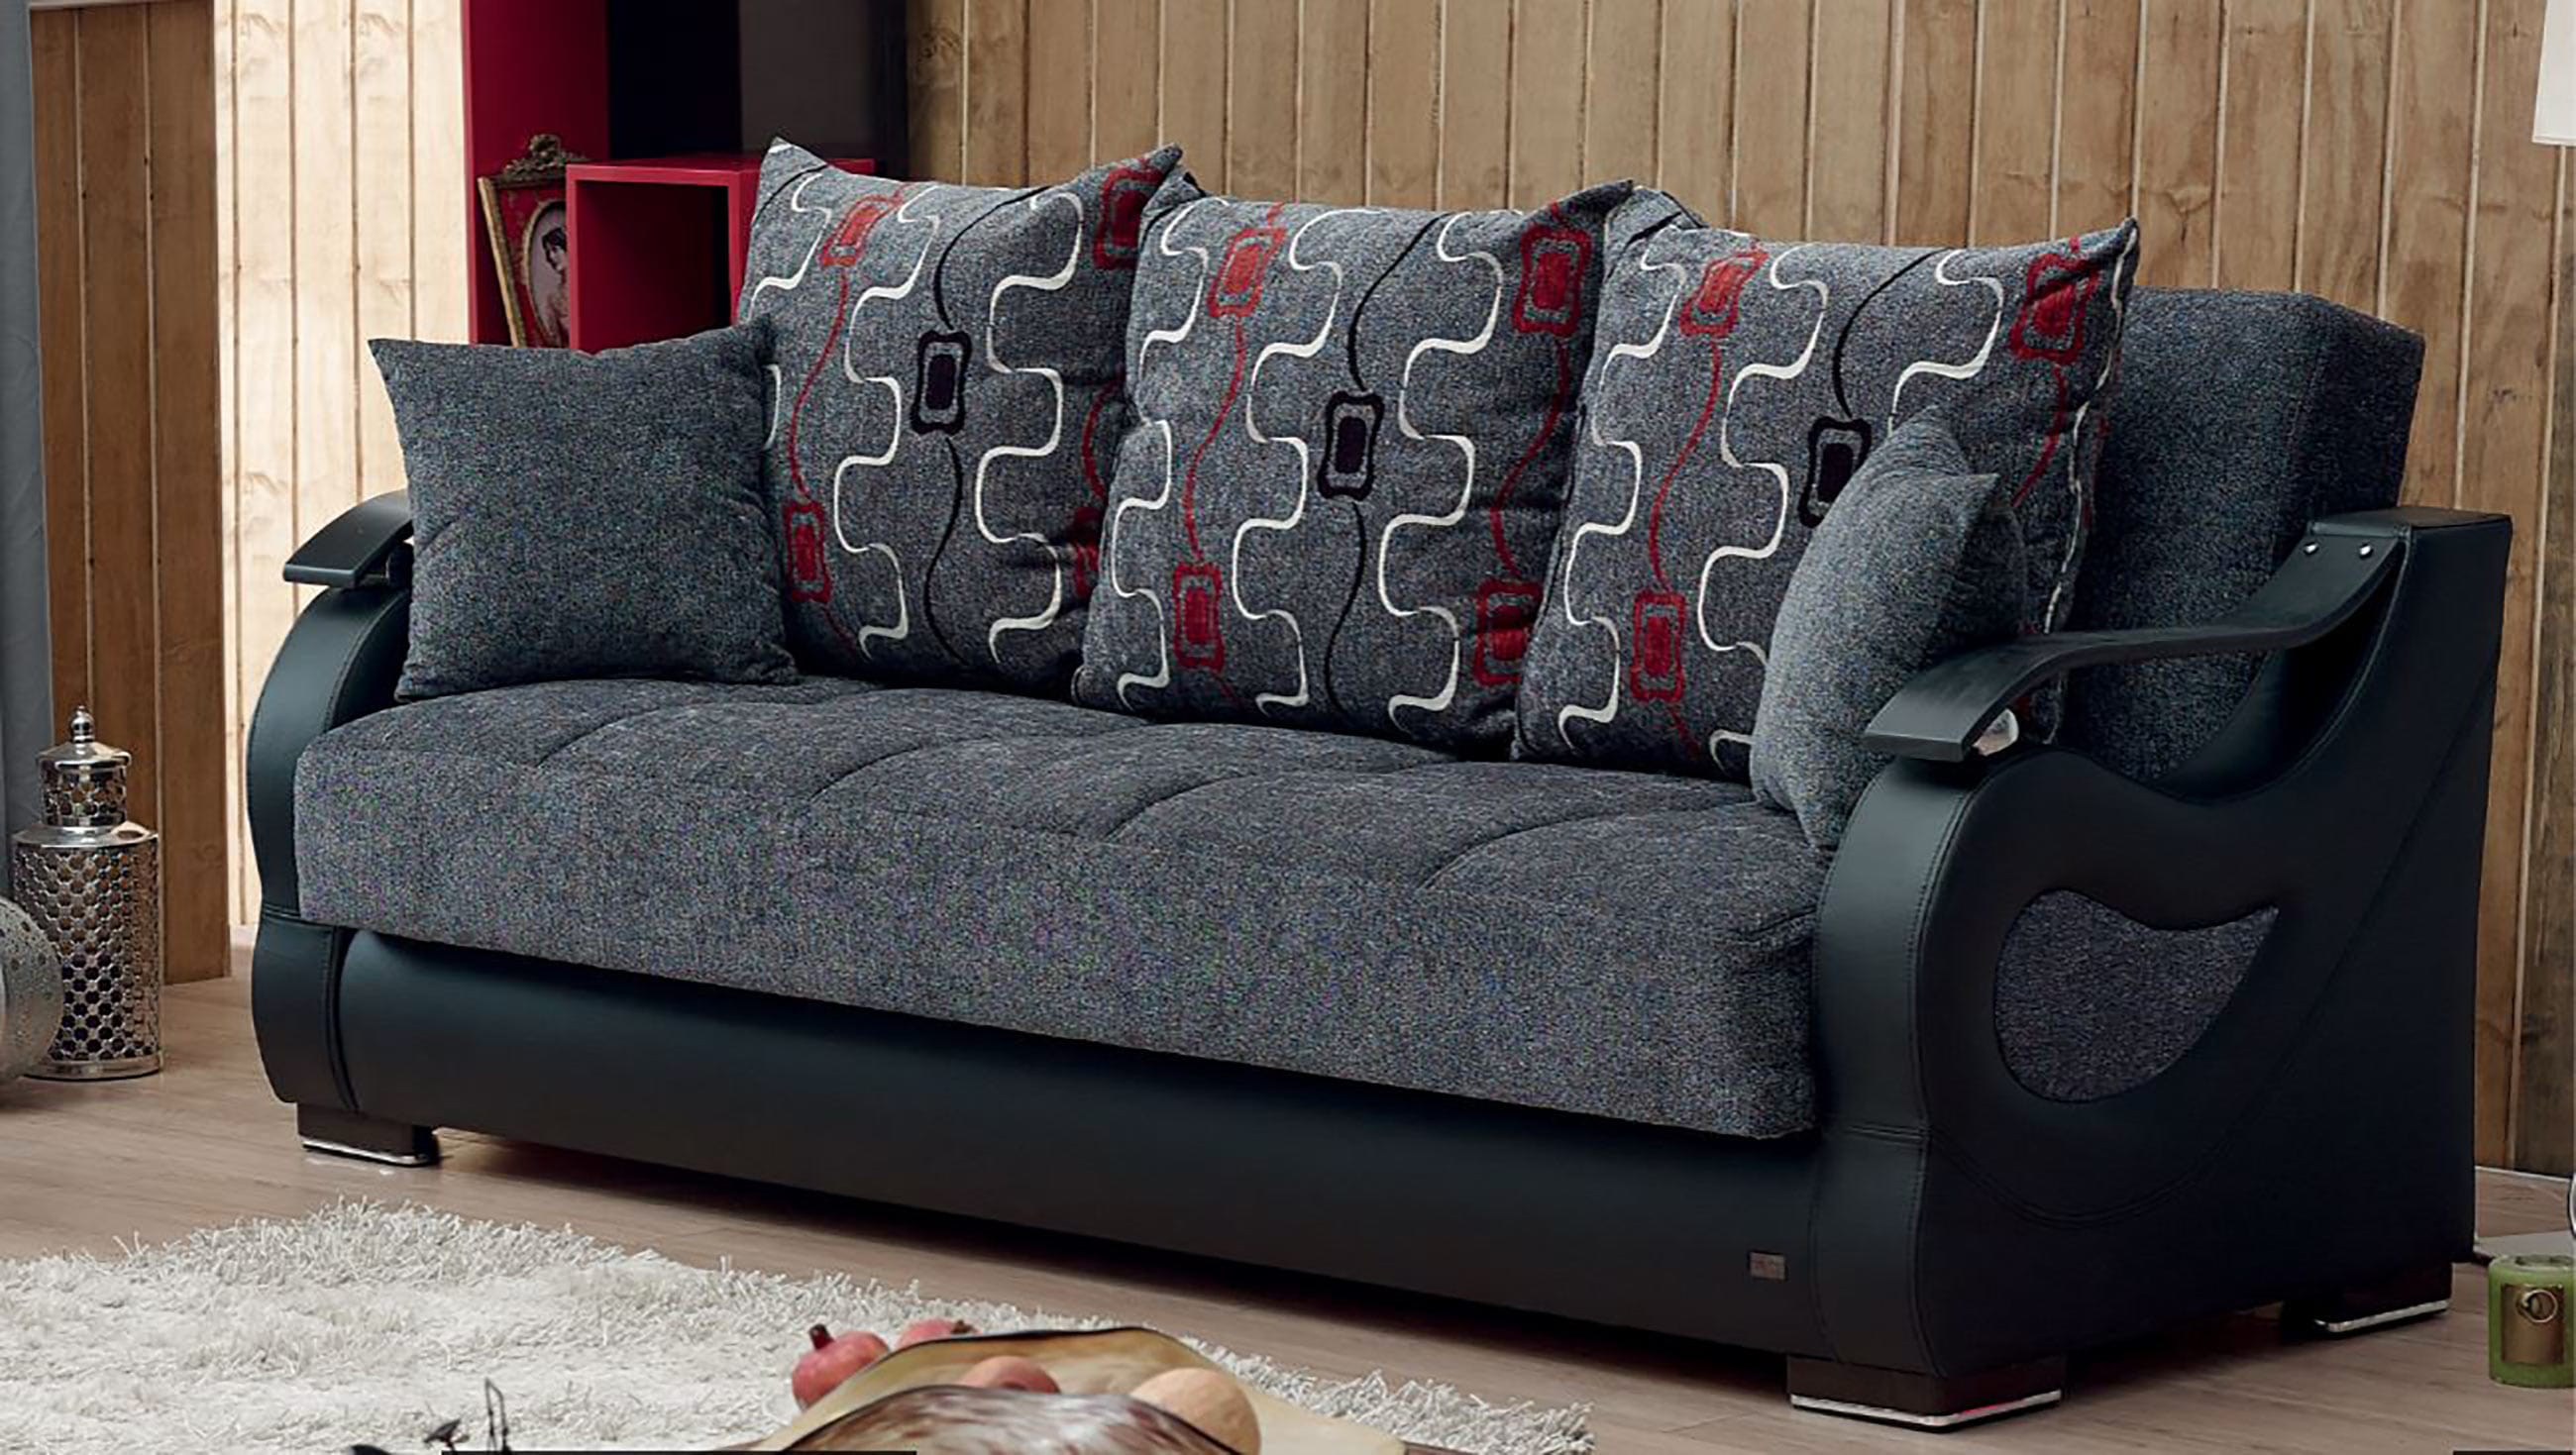 Arizona gray fabric sofa bed by empire furniture usa for Sofa bed usa